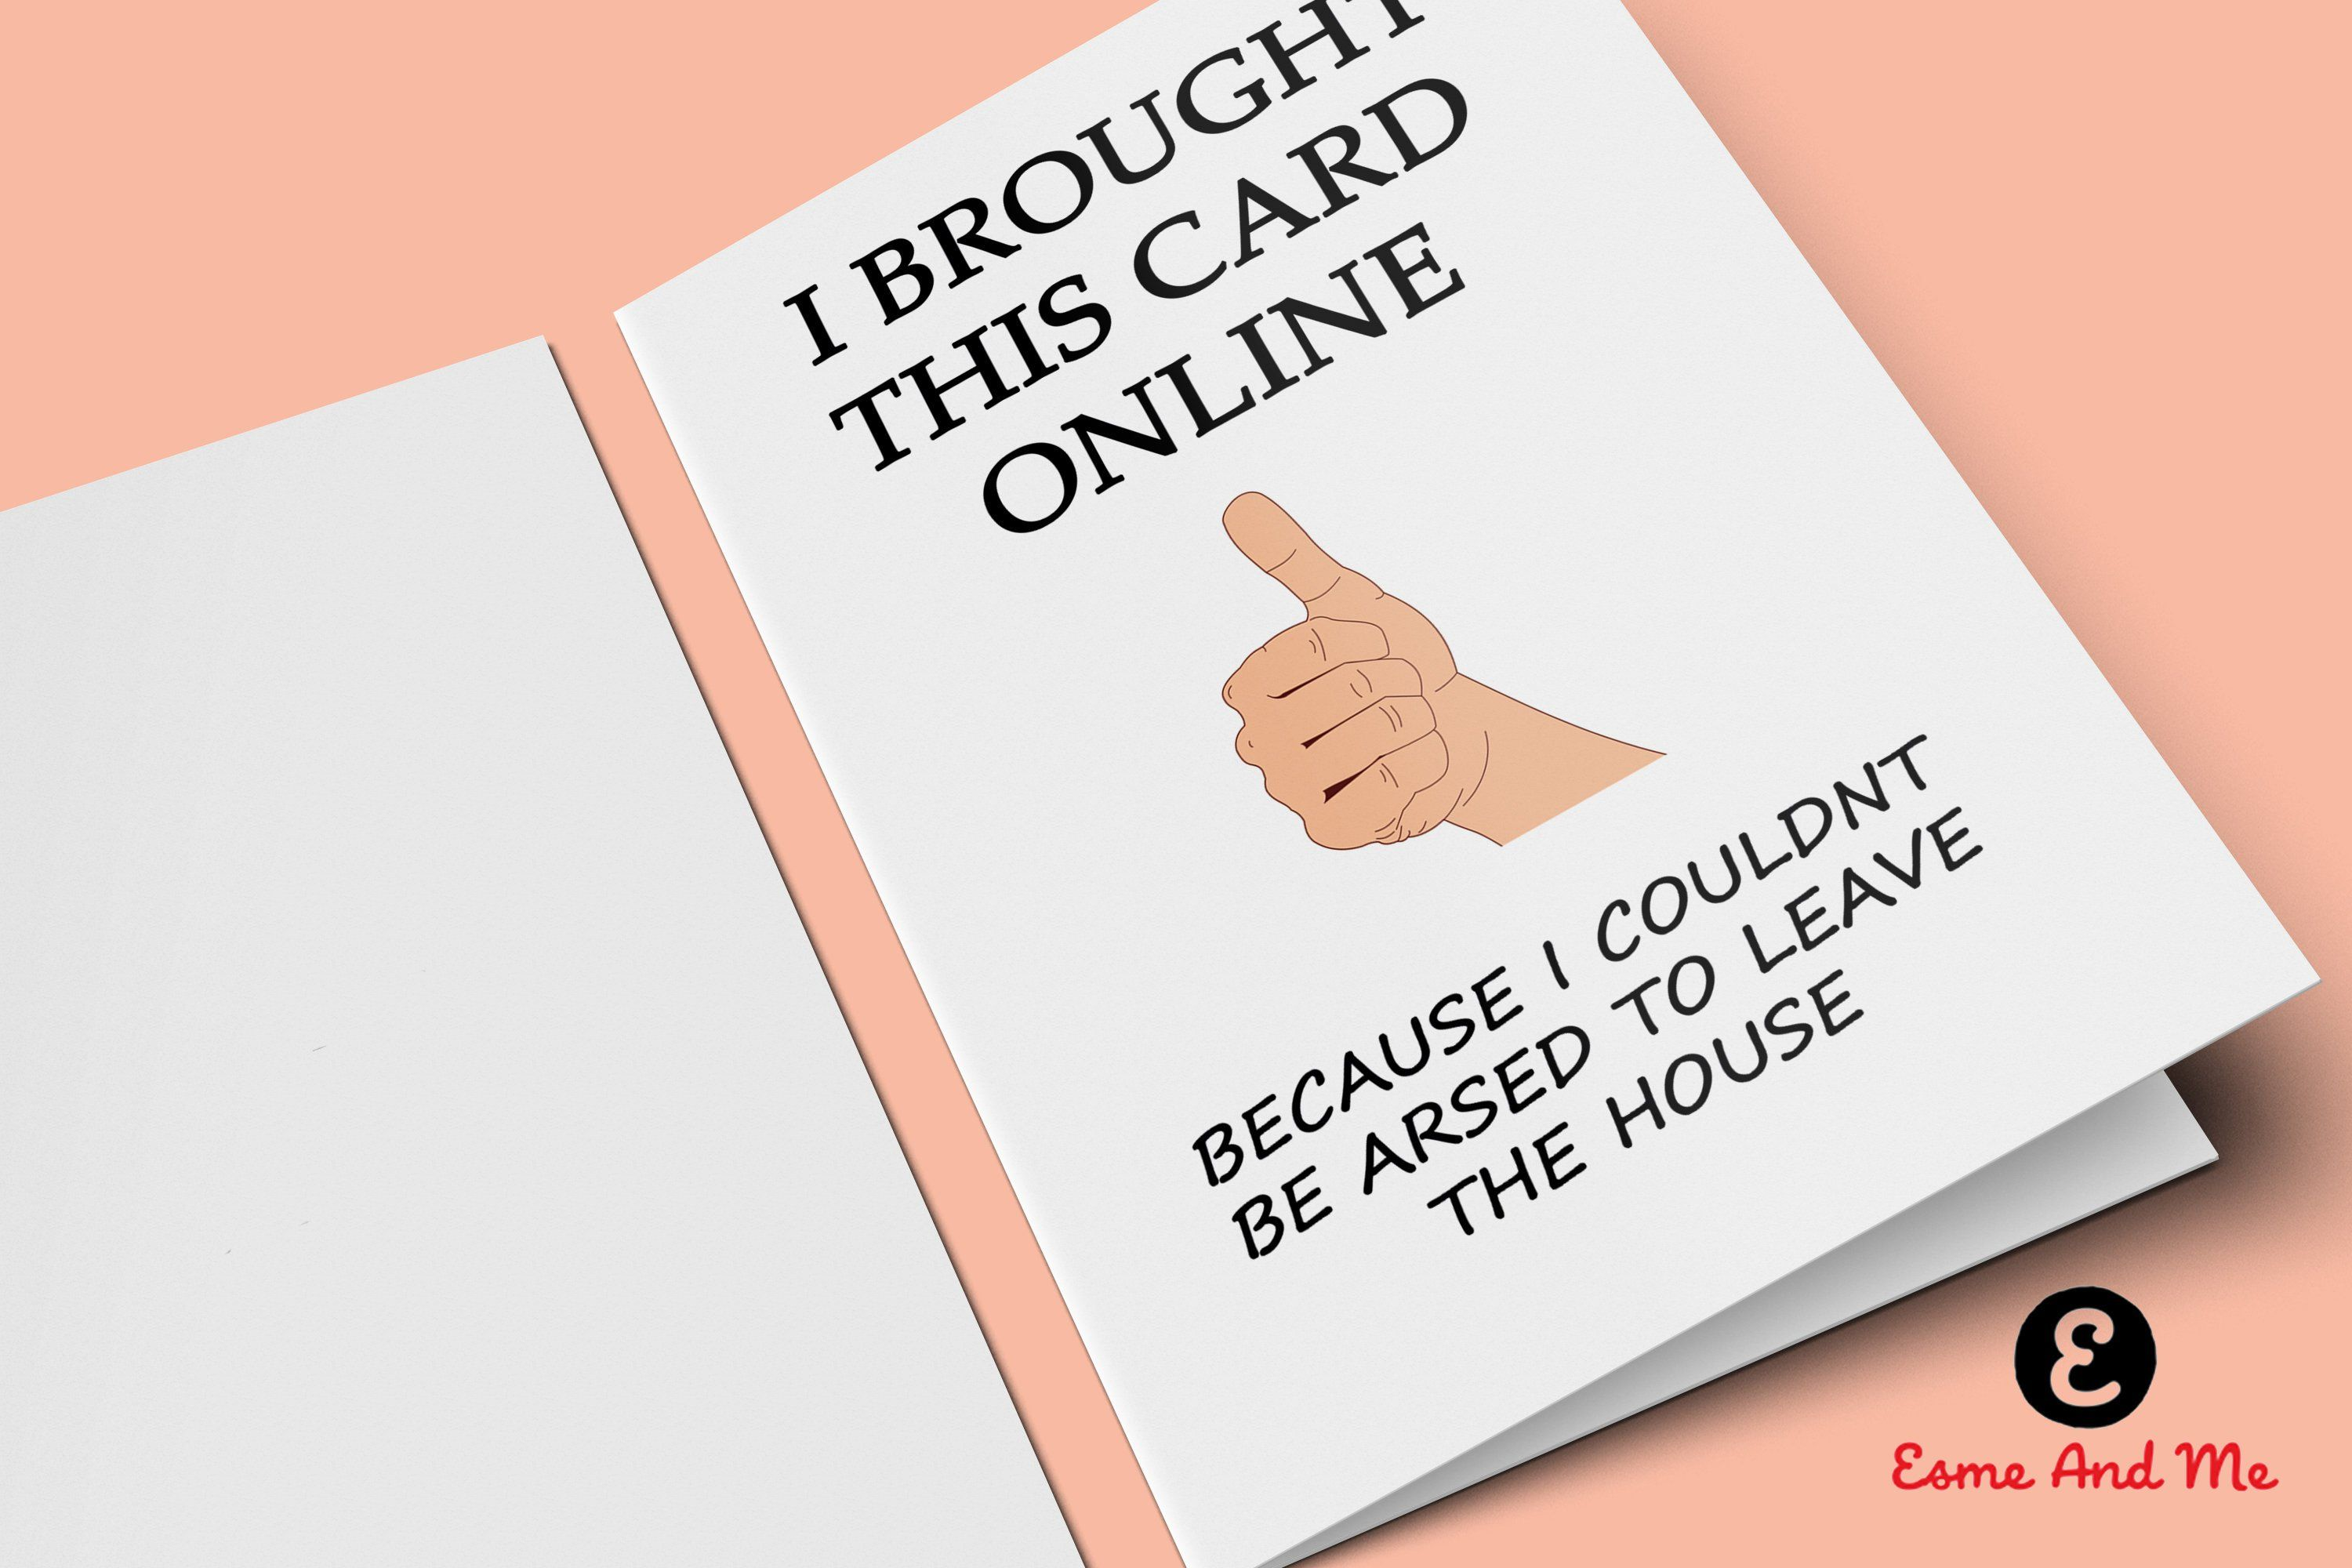 I Brought This Card Online Because Couldnt Be Bothered To Leave The House Funny Birthday Rude Cheeky Greetings By EsmeandMeUK On Etsy